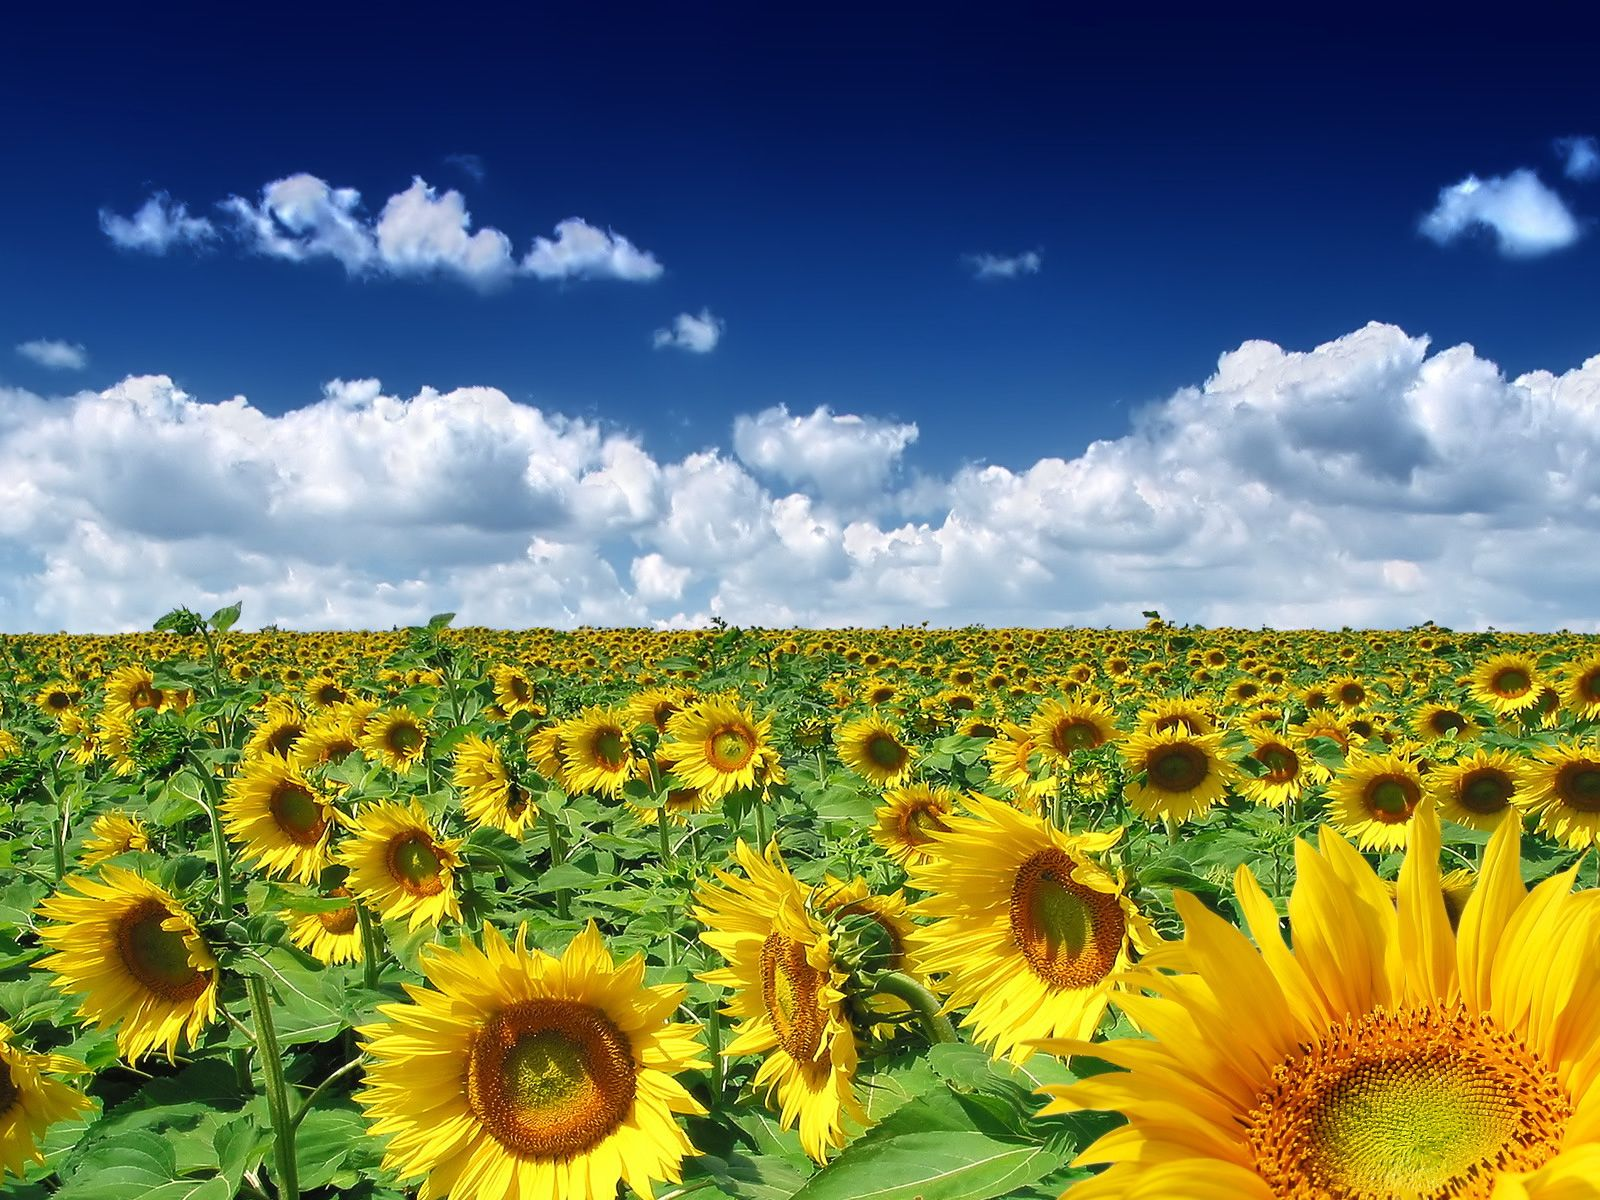 Image Detail For Sunflower Picture High Quality And Resolution Wallpaper Summer Wallpaper Beautiful Nature Wallpaper Spring Wallpaper